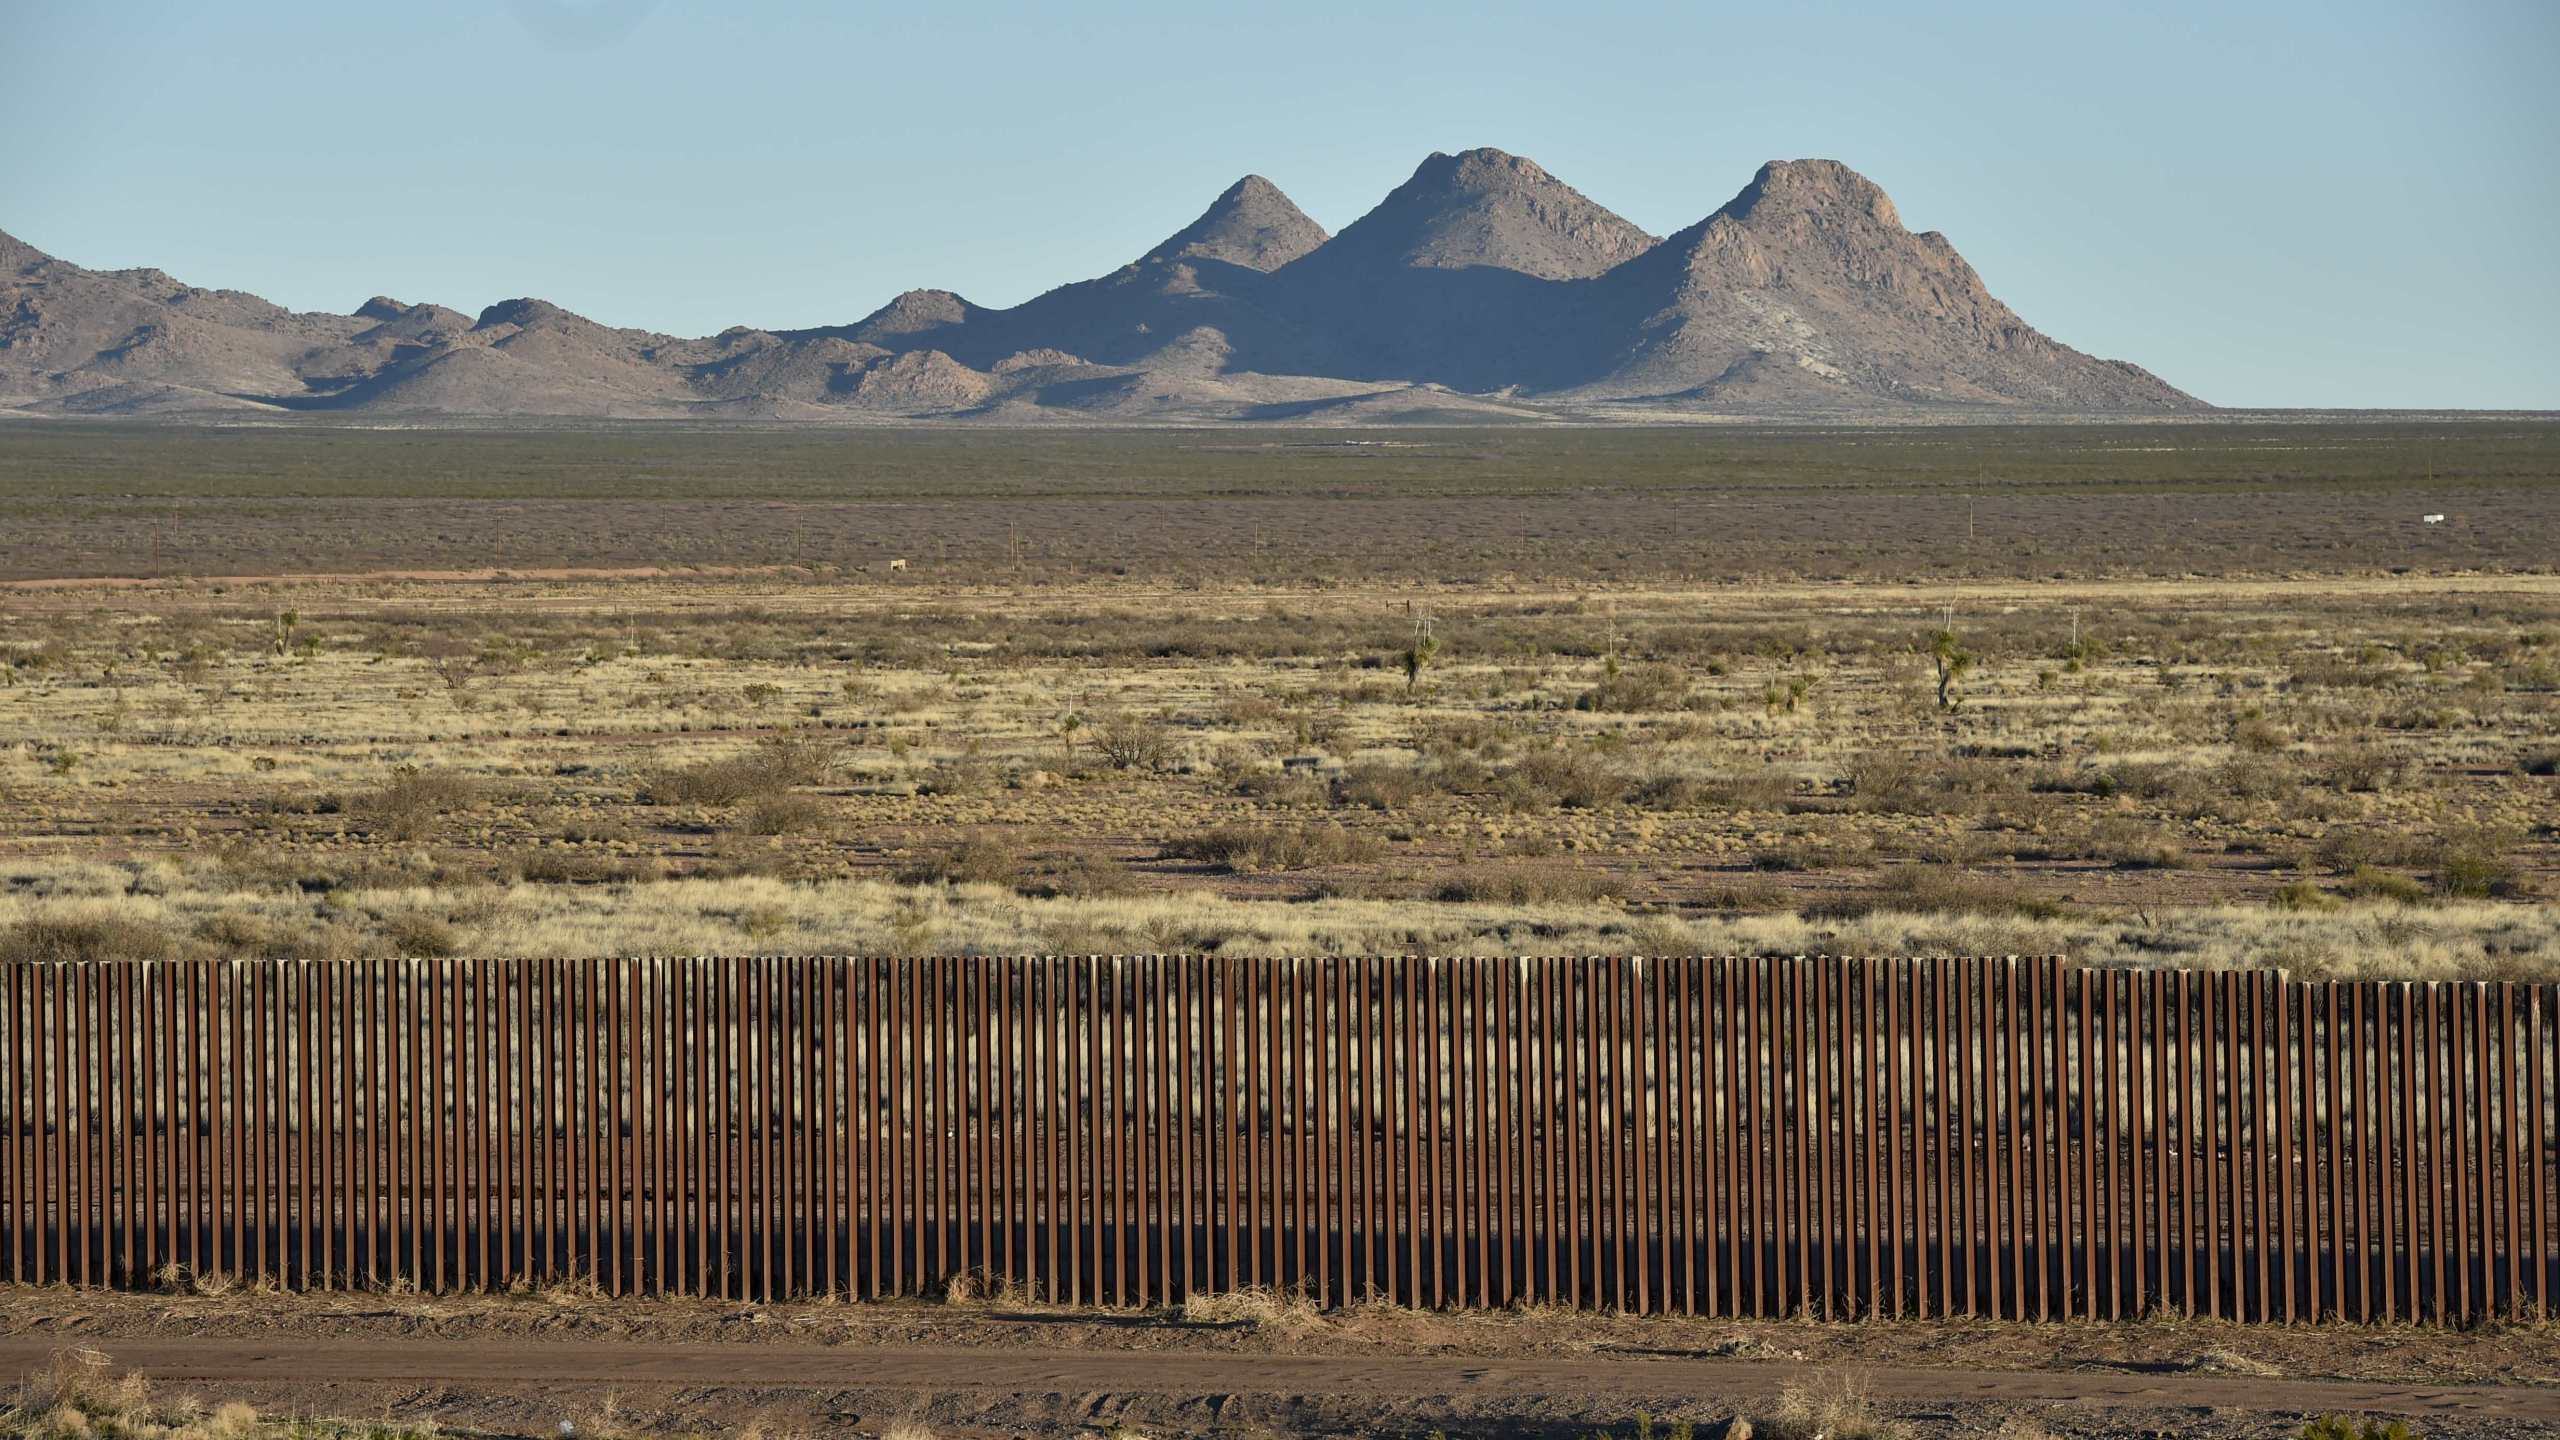 View of the metal fence between U.S. and Mexico taken in Puerto Palomas, Chihuahua state, on Feb. 19, 2017. (Credit: Yuri Cortez / AFP / Getty Images)